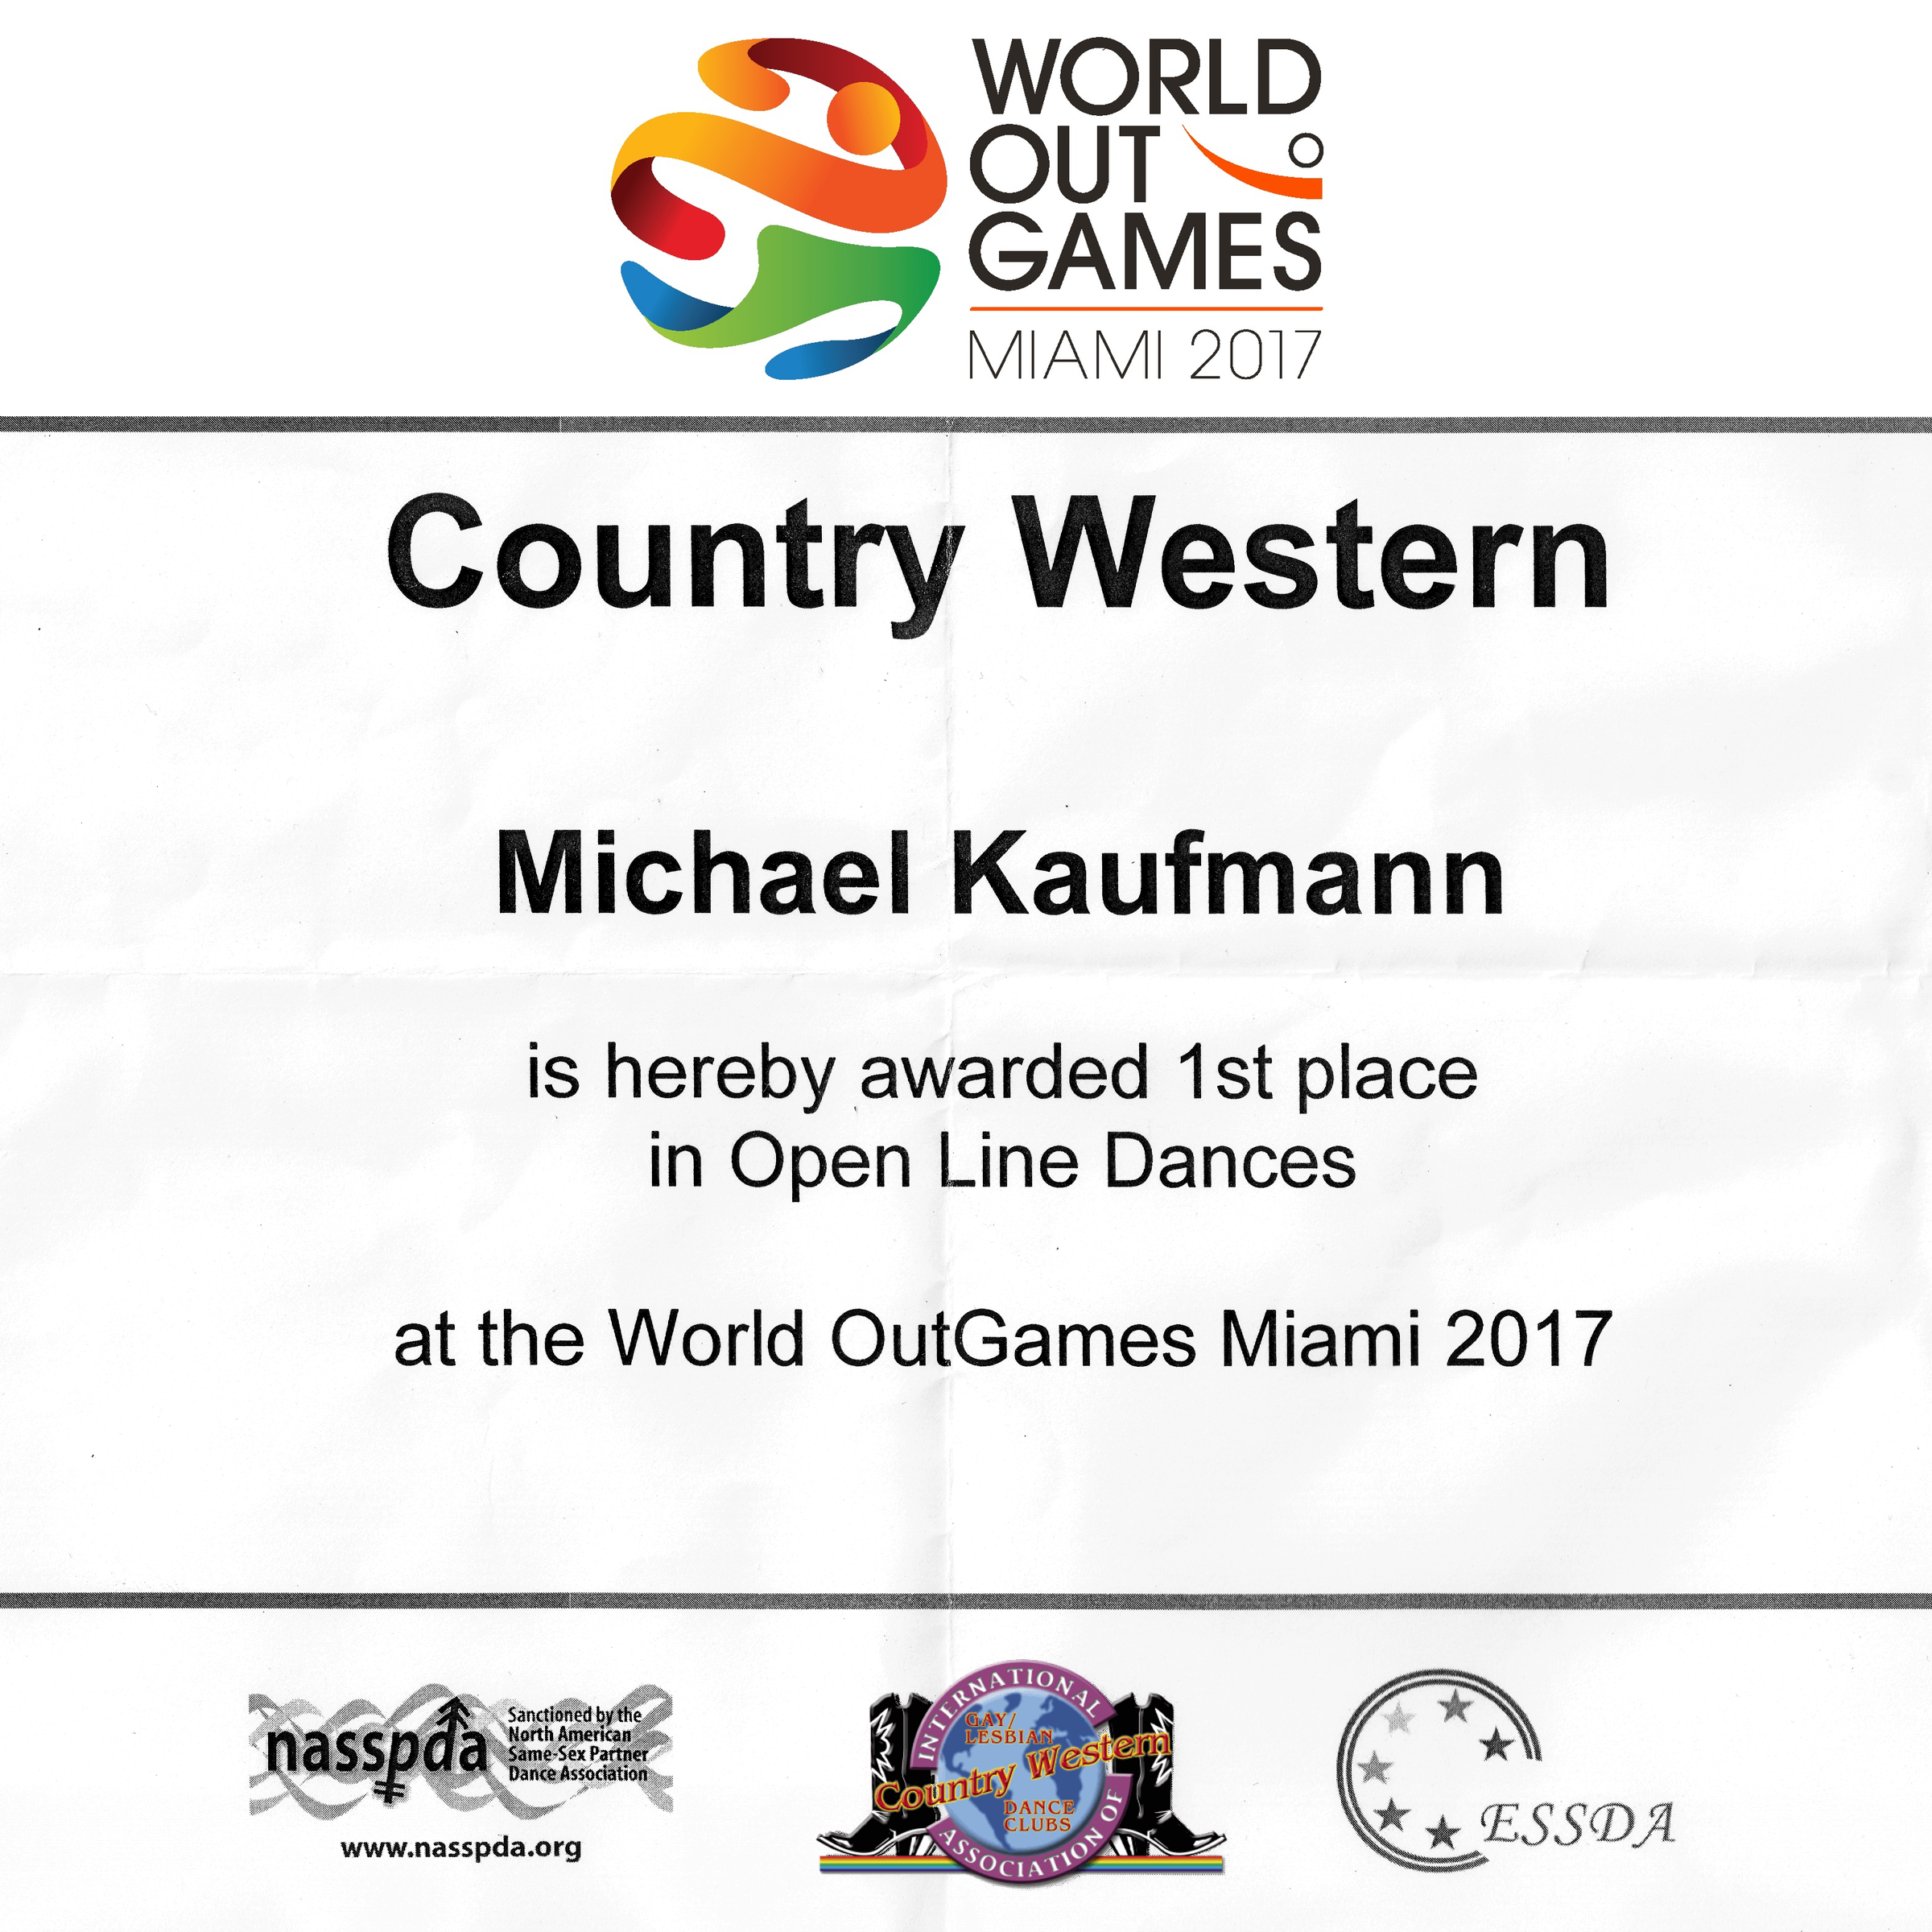 Michael Kaufmann was  awarded 1st place in  Open Line Dances for the  Country Western dancesport event at the  World OutGames Miami 2017 .